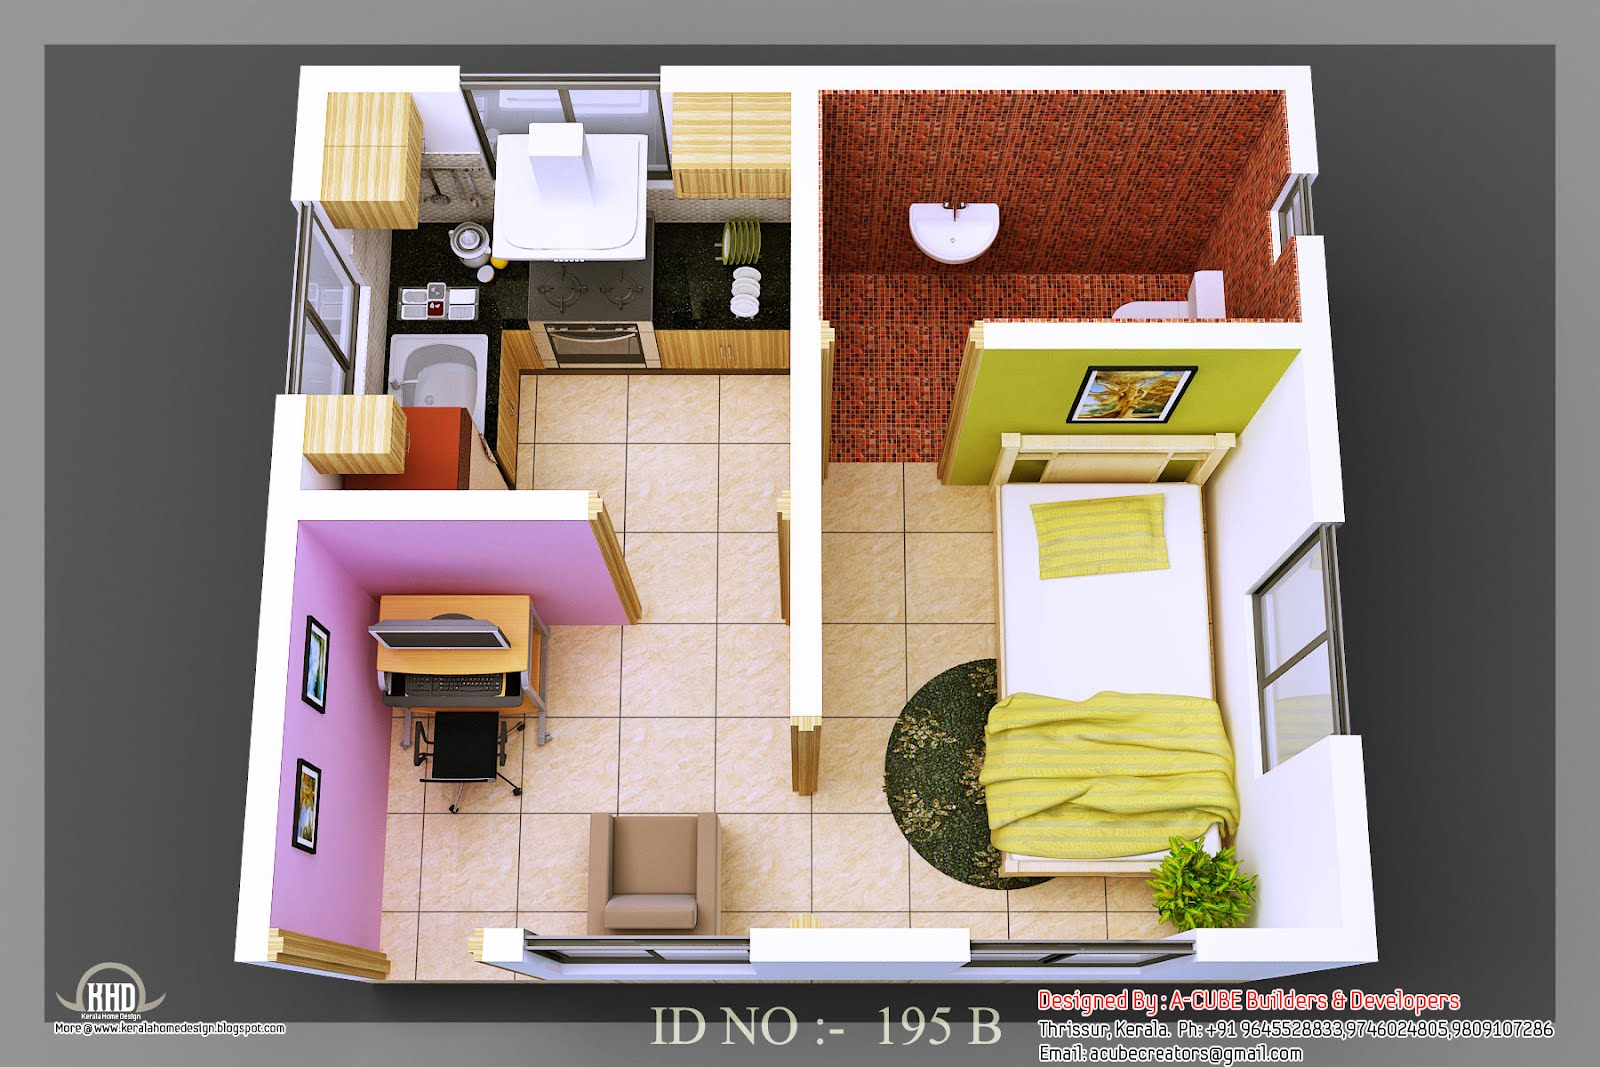 3d isometric views of small house plans kerala home design and floor plans. Black Bedroom Furniture Sets. Home Design Ideas